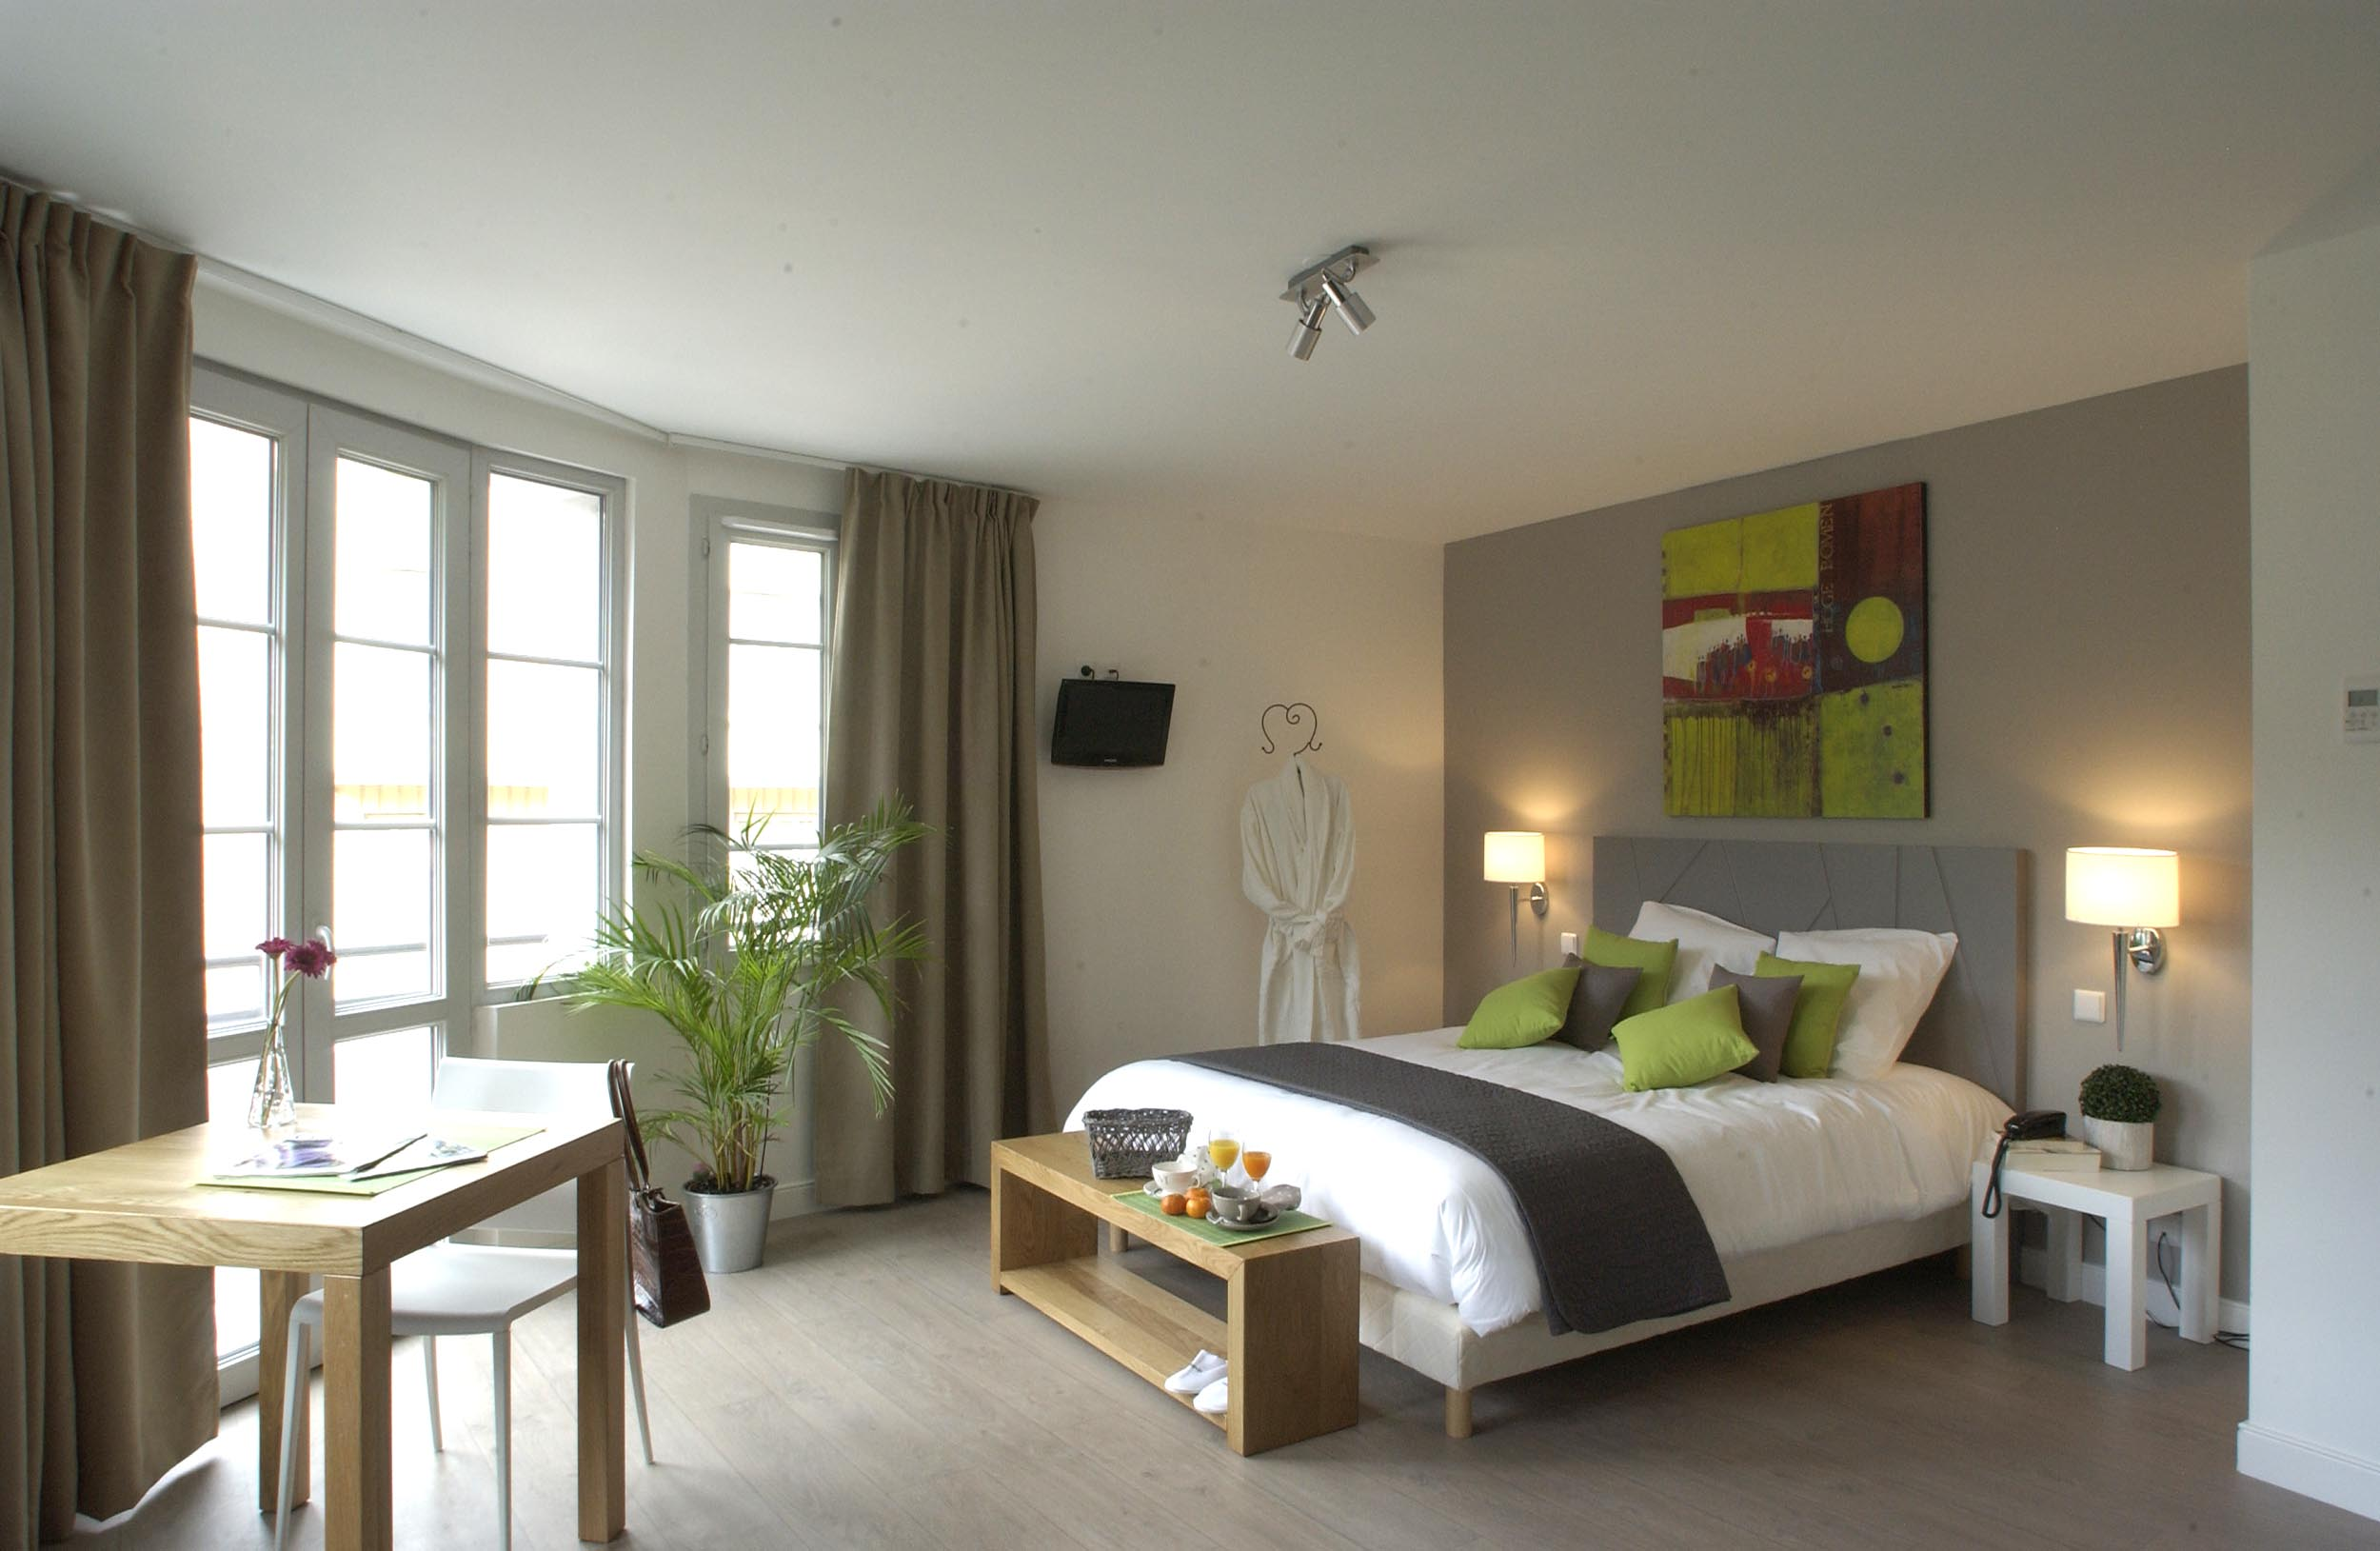 carolinemaccioni-decorationdinterieur-amenagement-renovation-hotel-lorda-lourdes-65-img0312